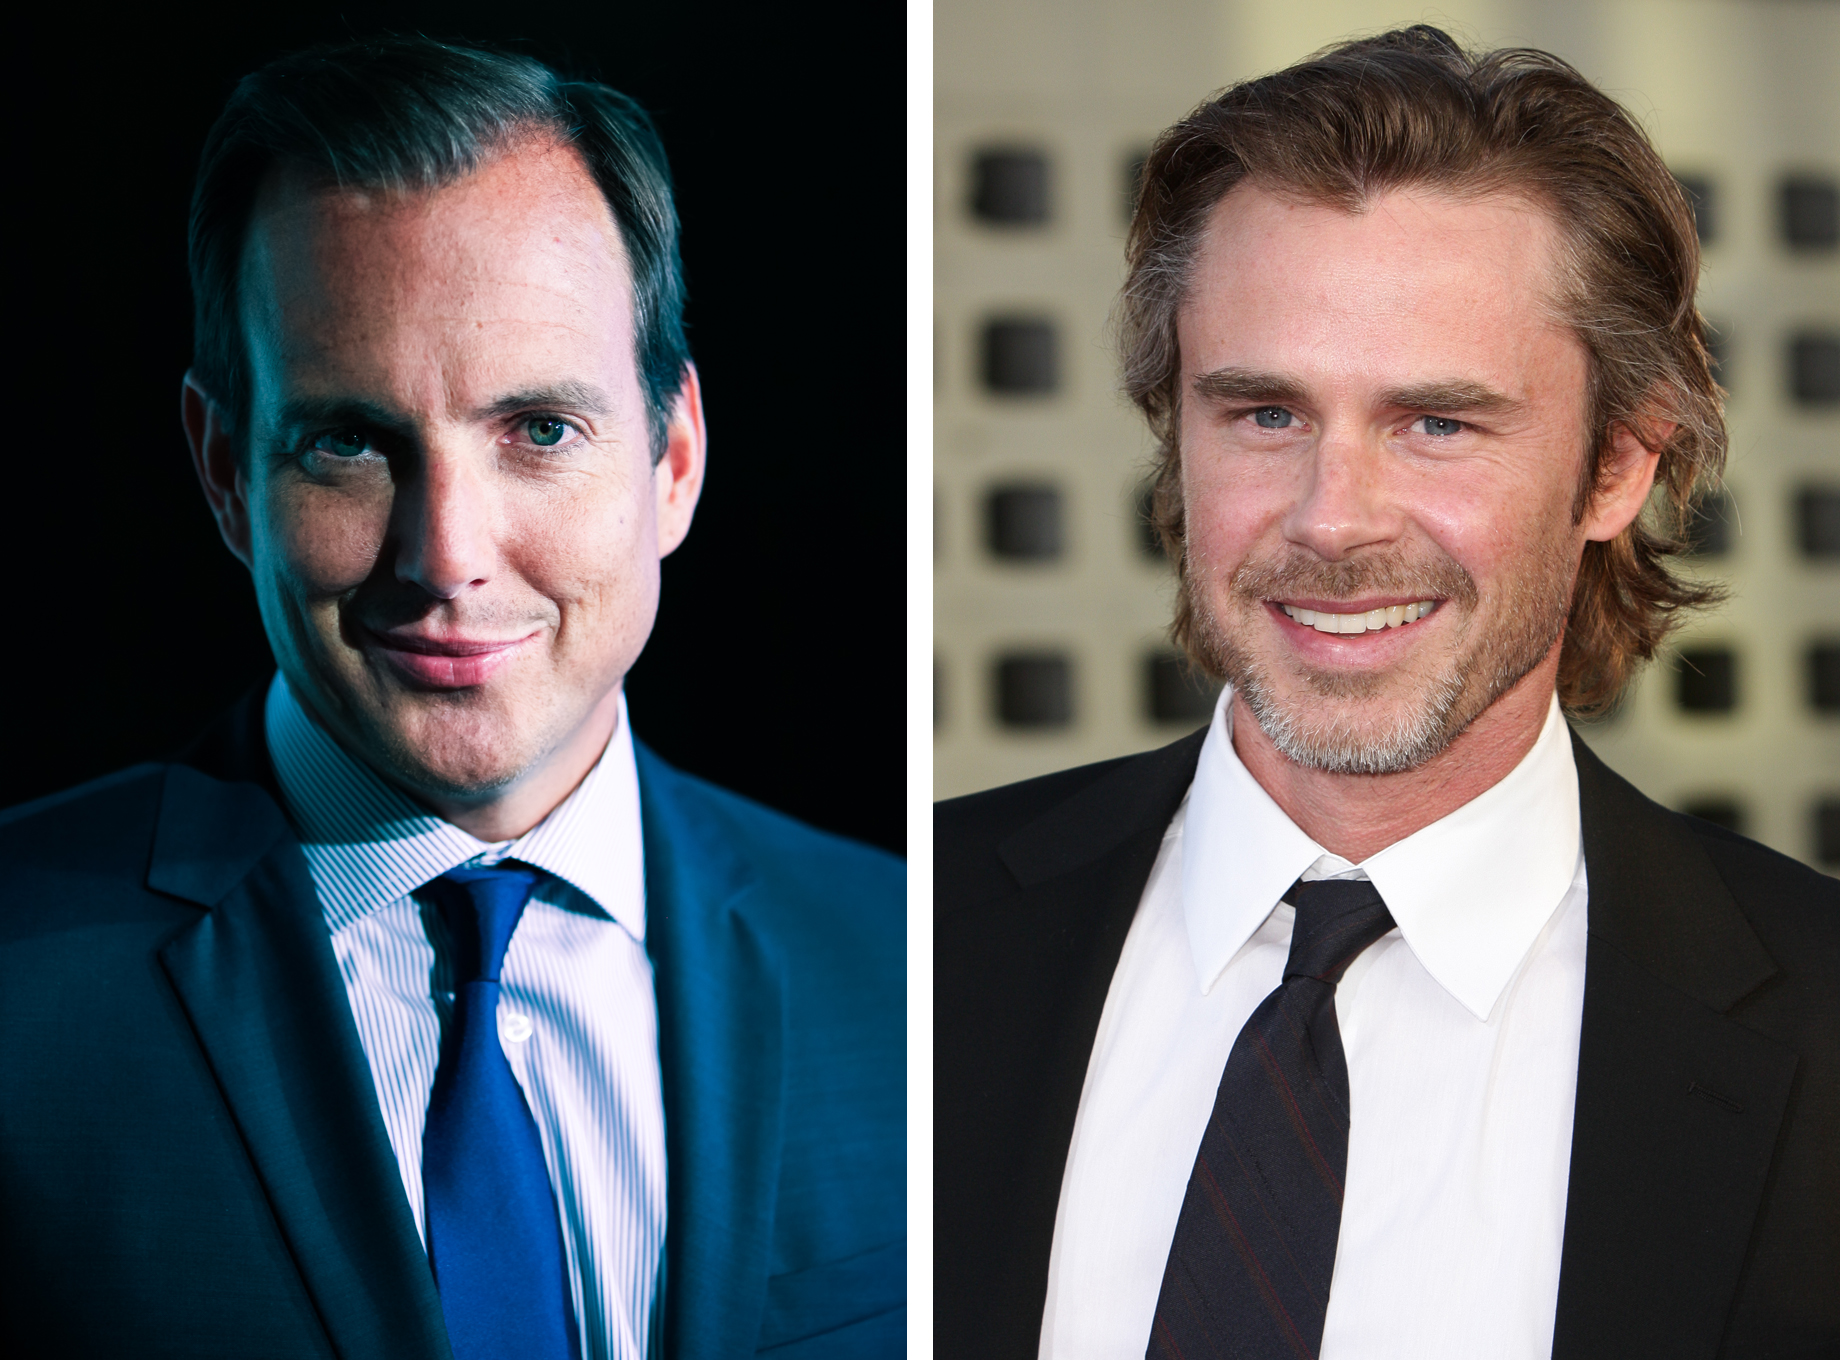 Will Arnett and Sam Trammell